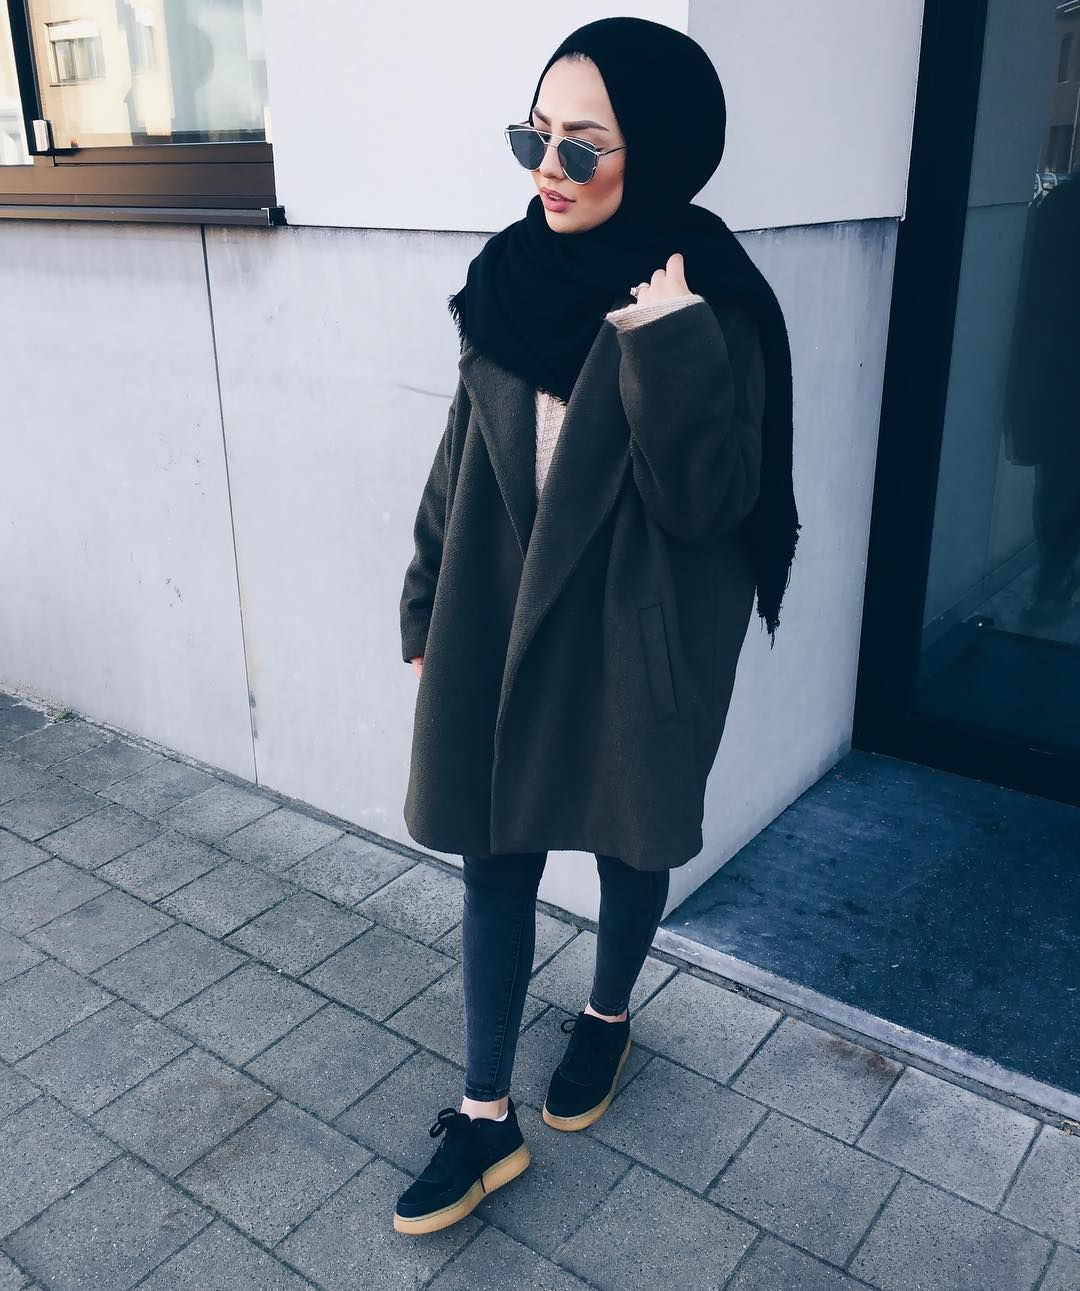 Muslim Fashion Hijab Pinterest Winter Fashion Follow Me And Instagram